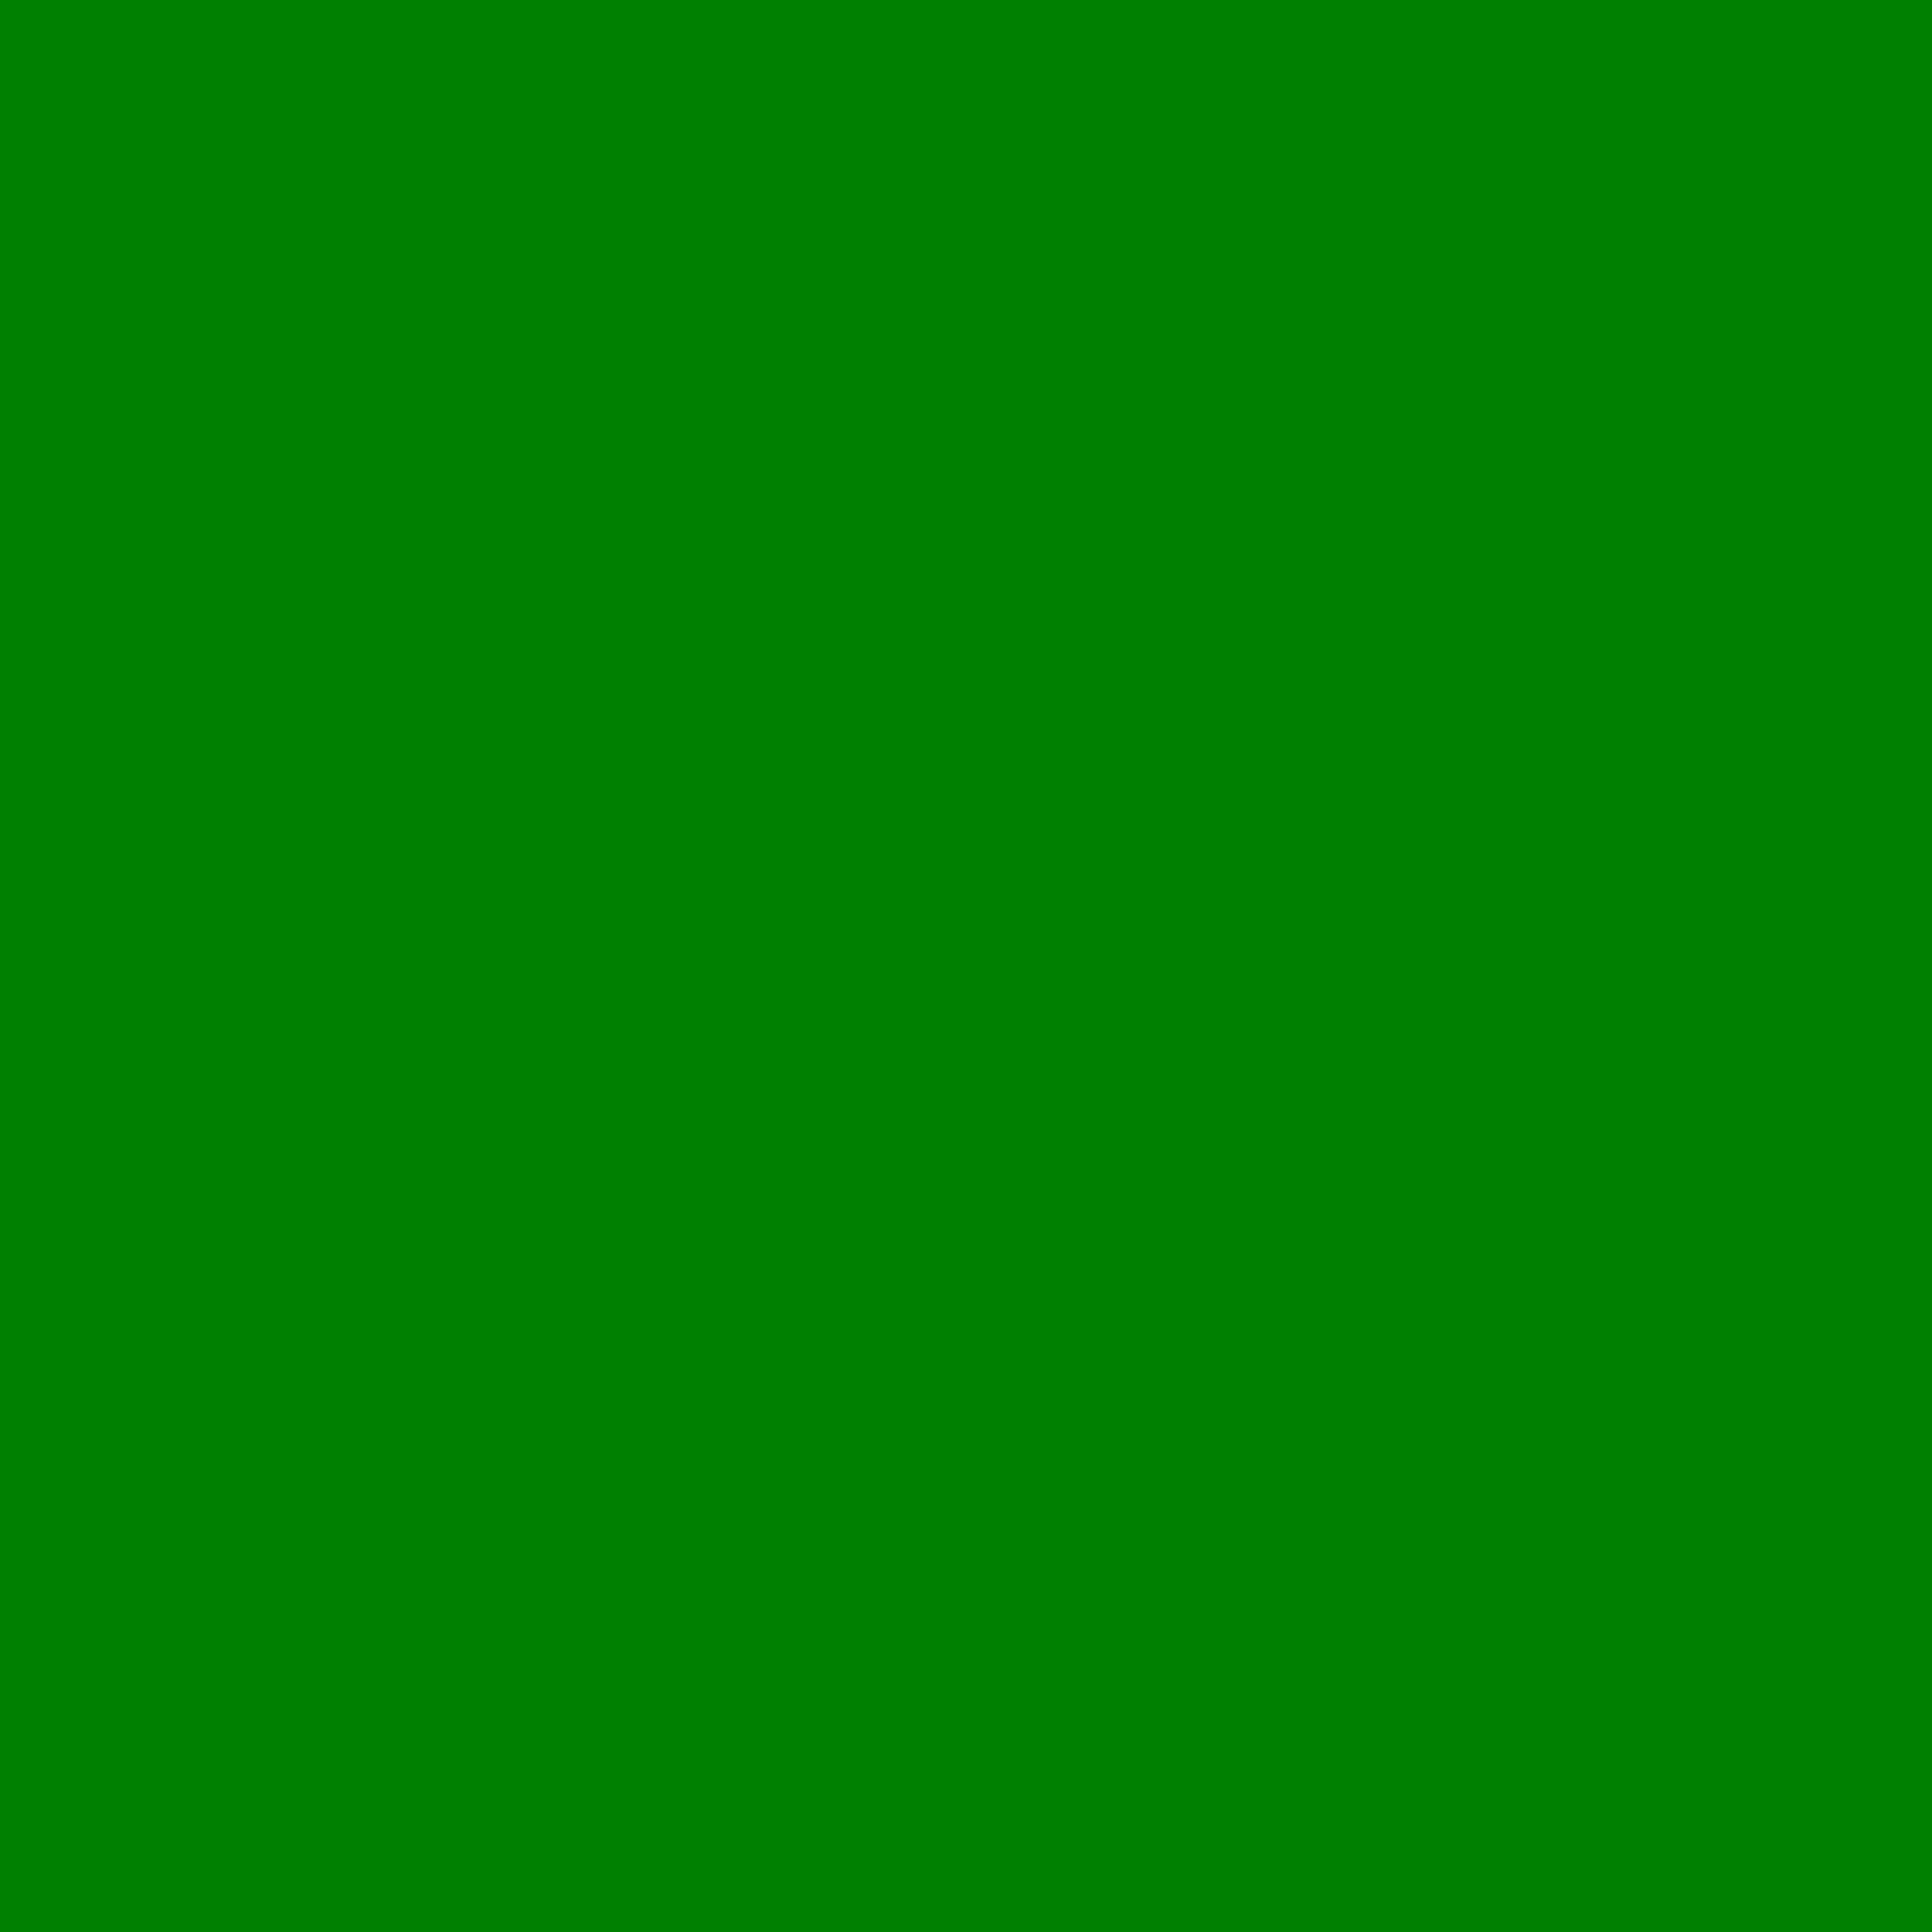 2732x2732 Office Green Solid Color Background